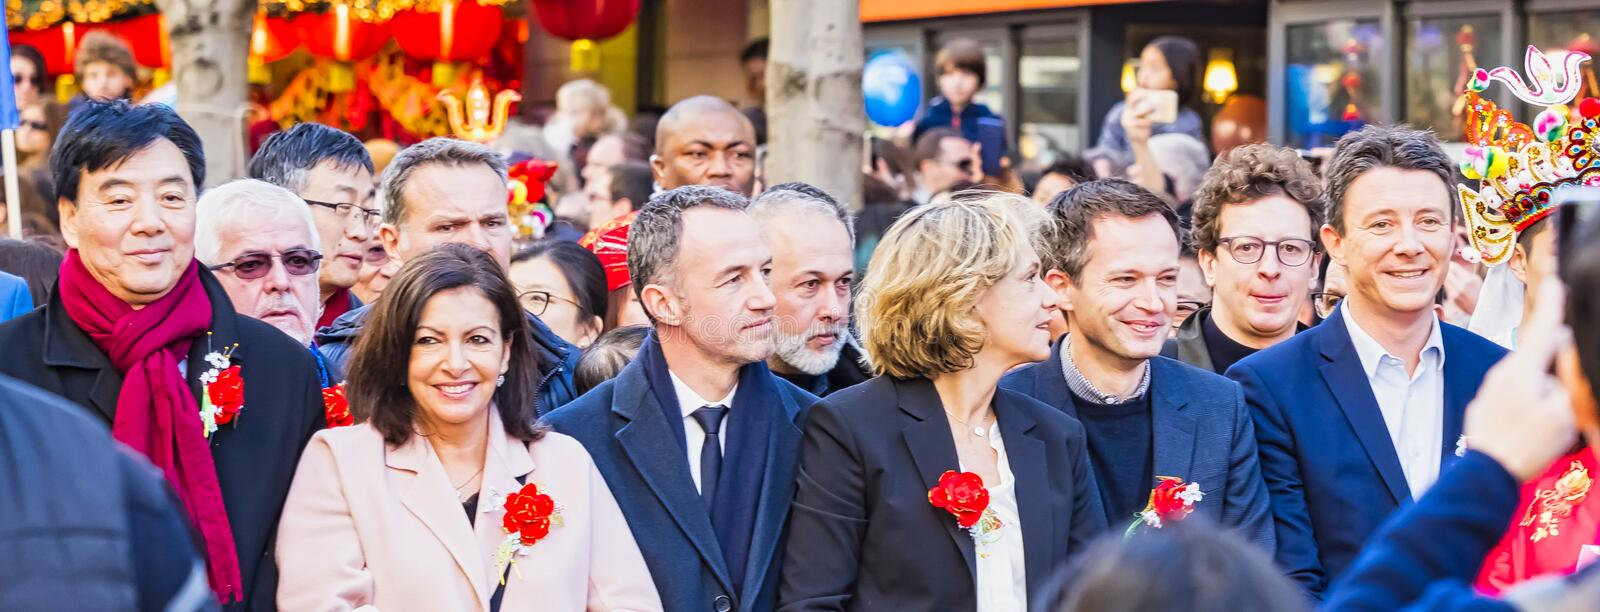 Chinese new year 2019 Paris France - Politicians in the parade stock photography